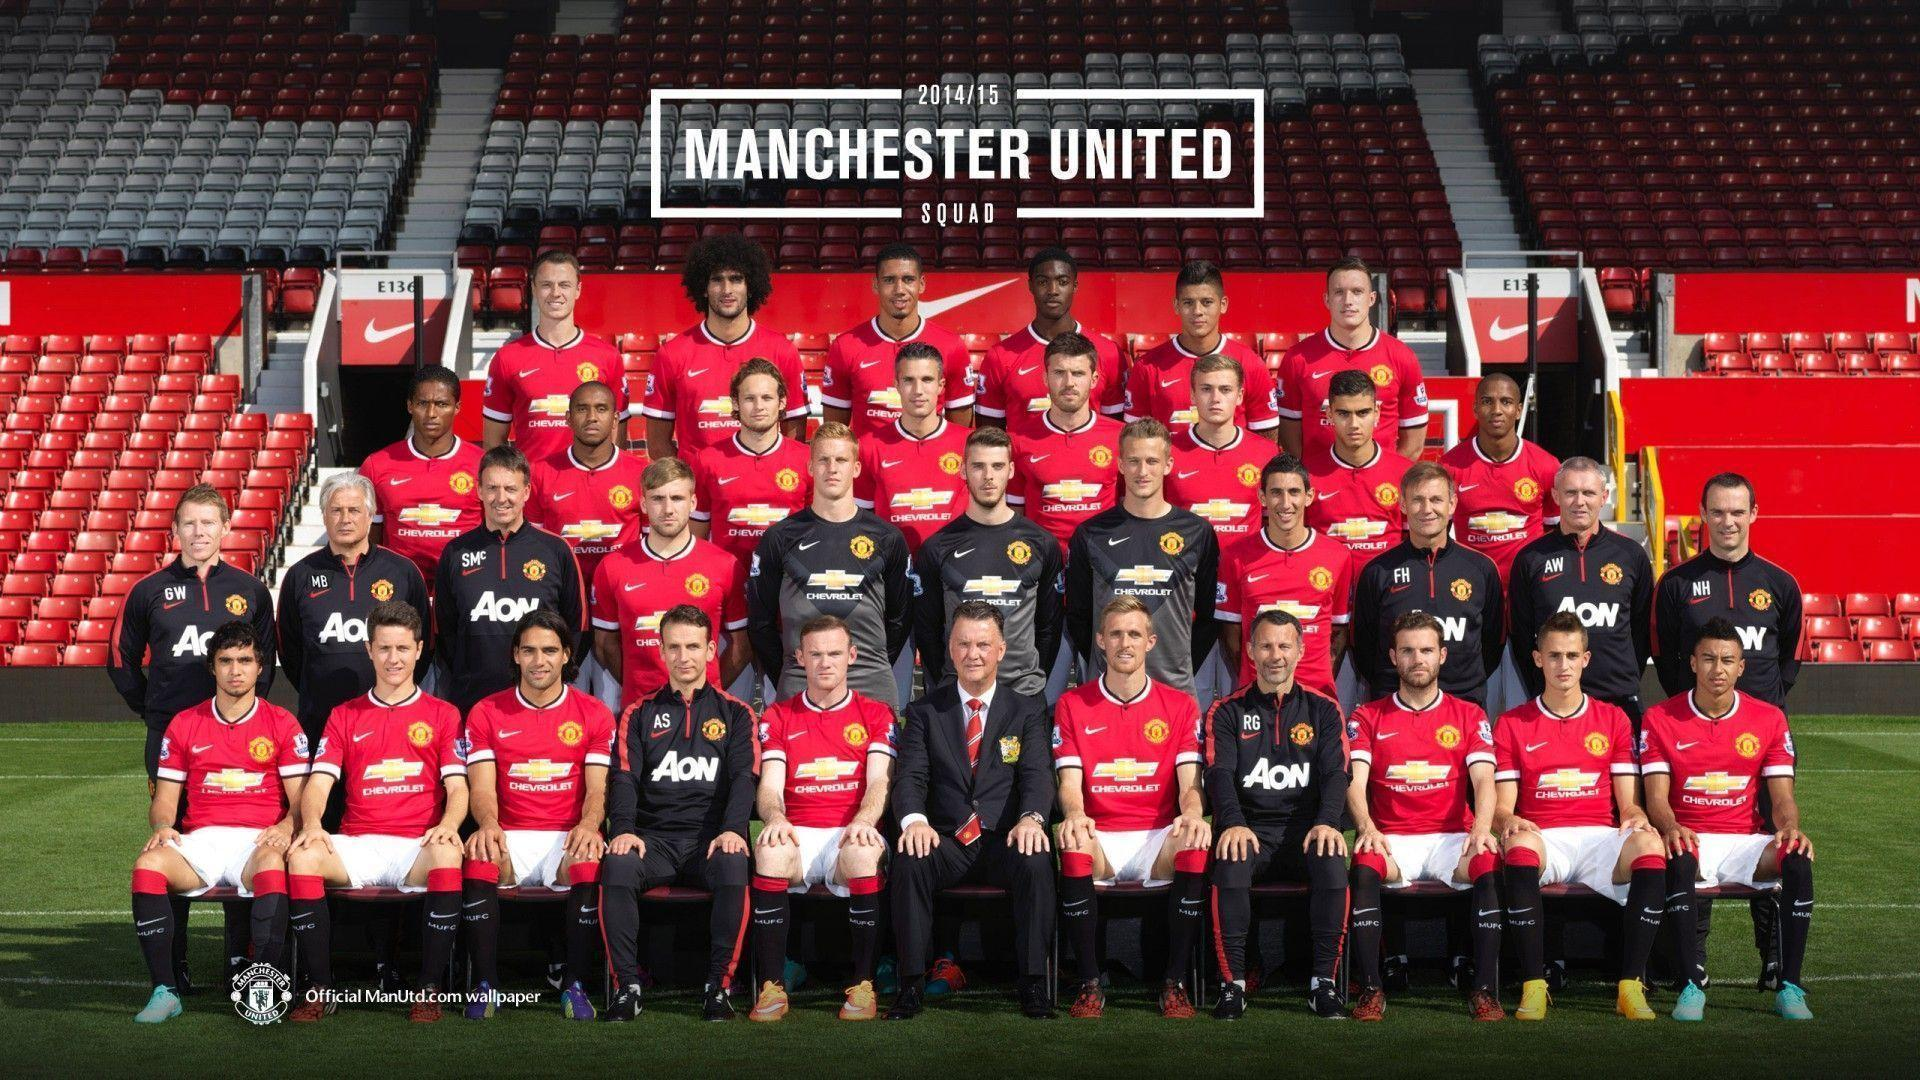 manchester united players 2014 2015 wallpaper hd free download